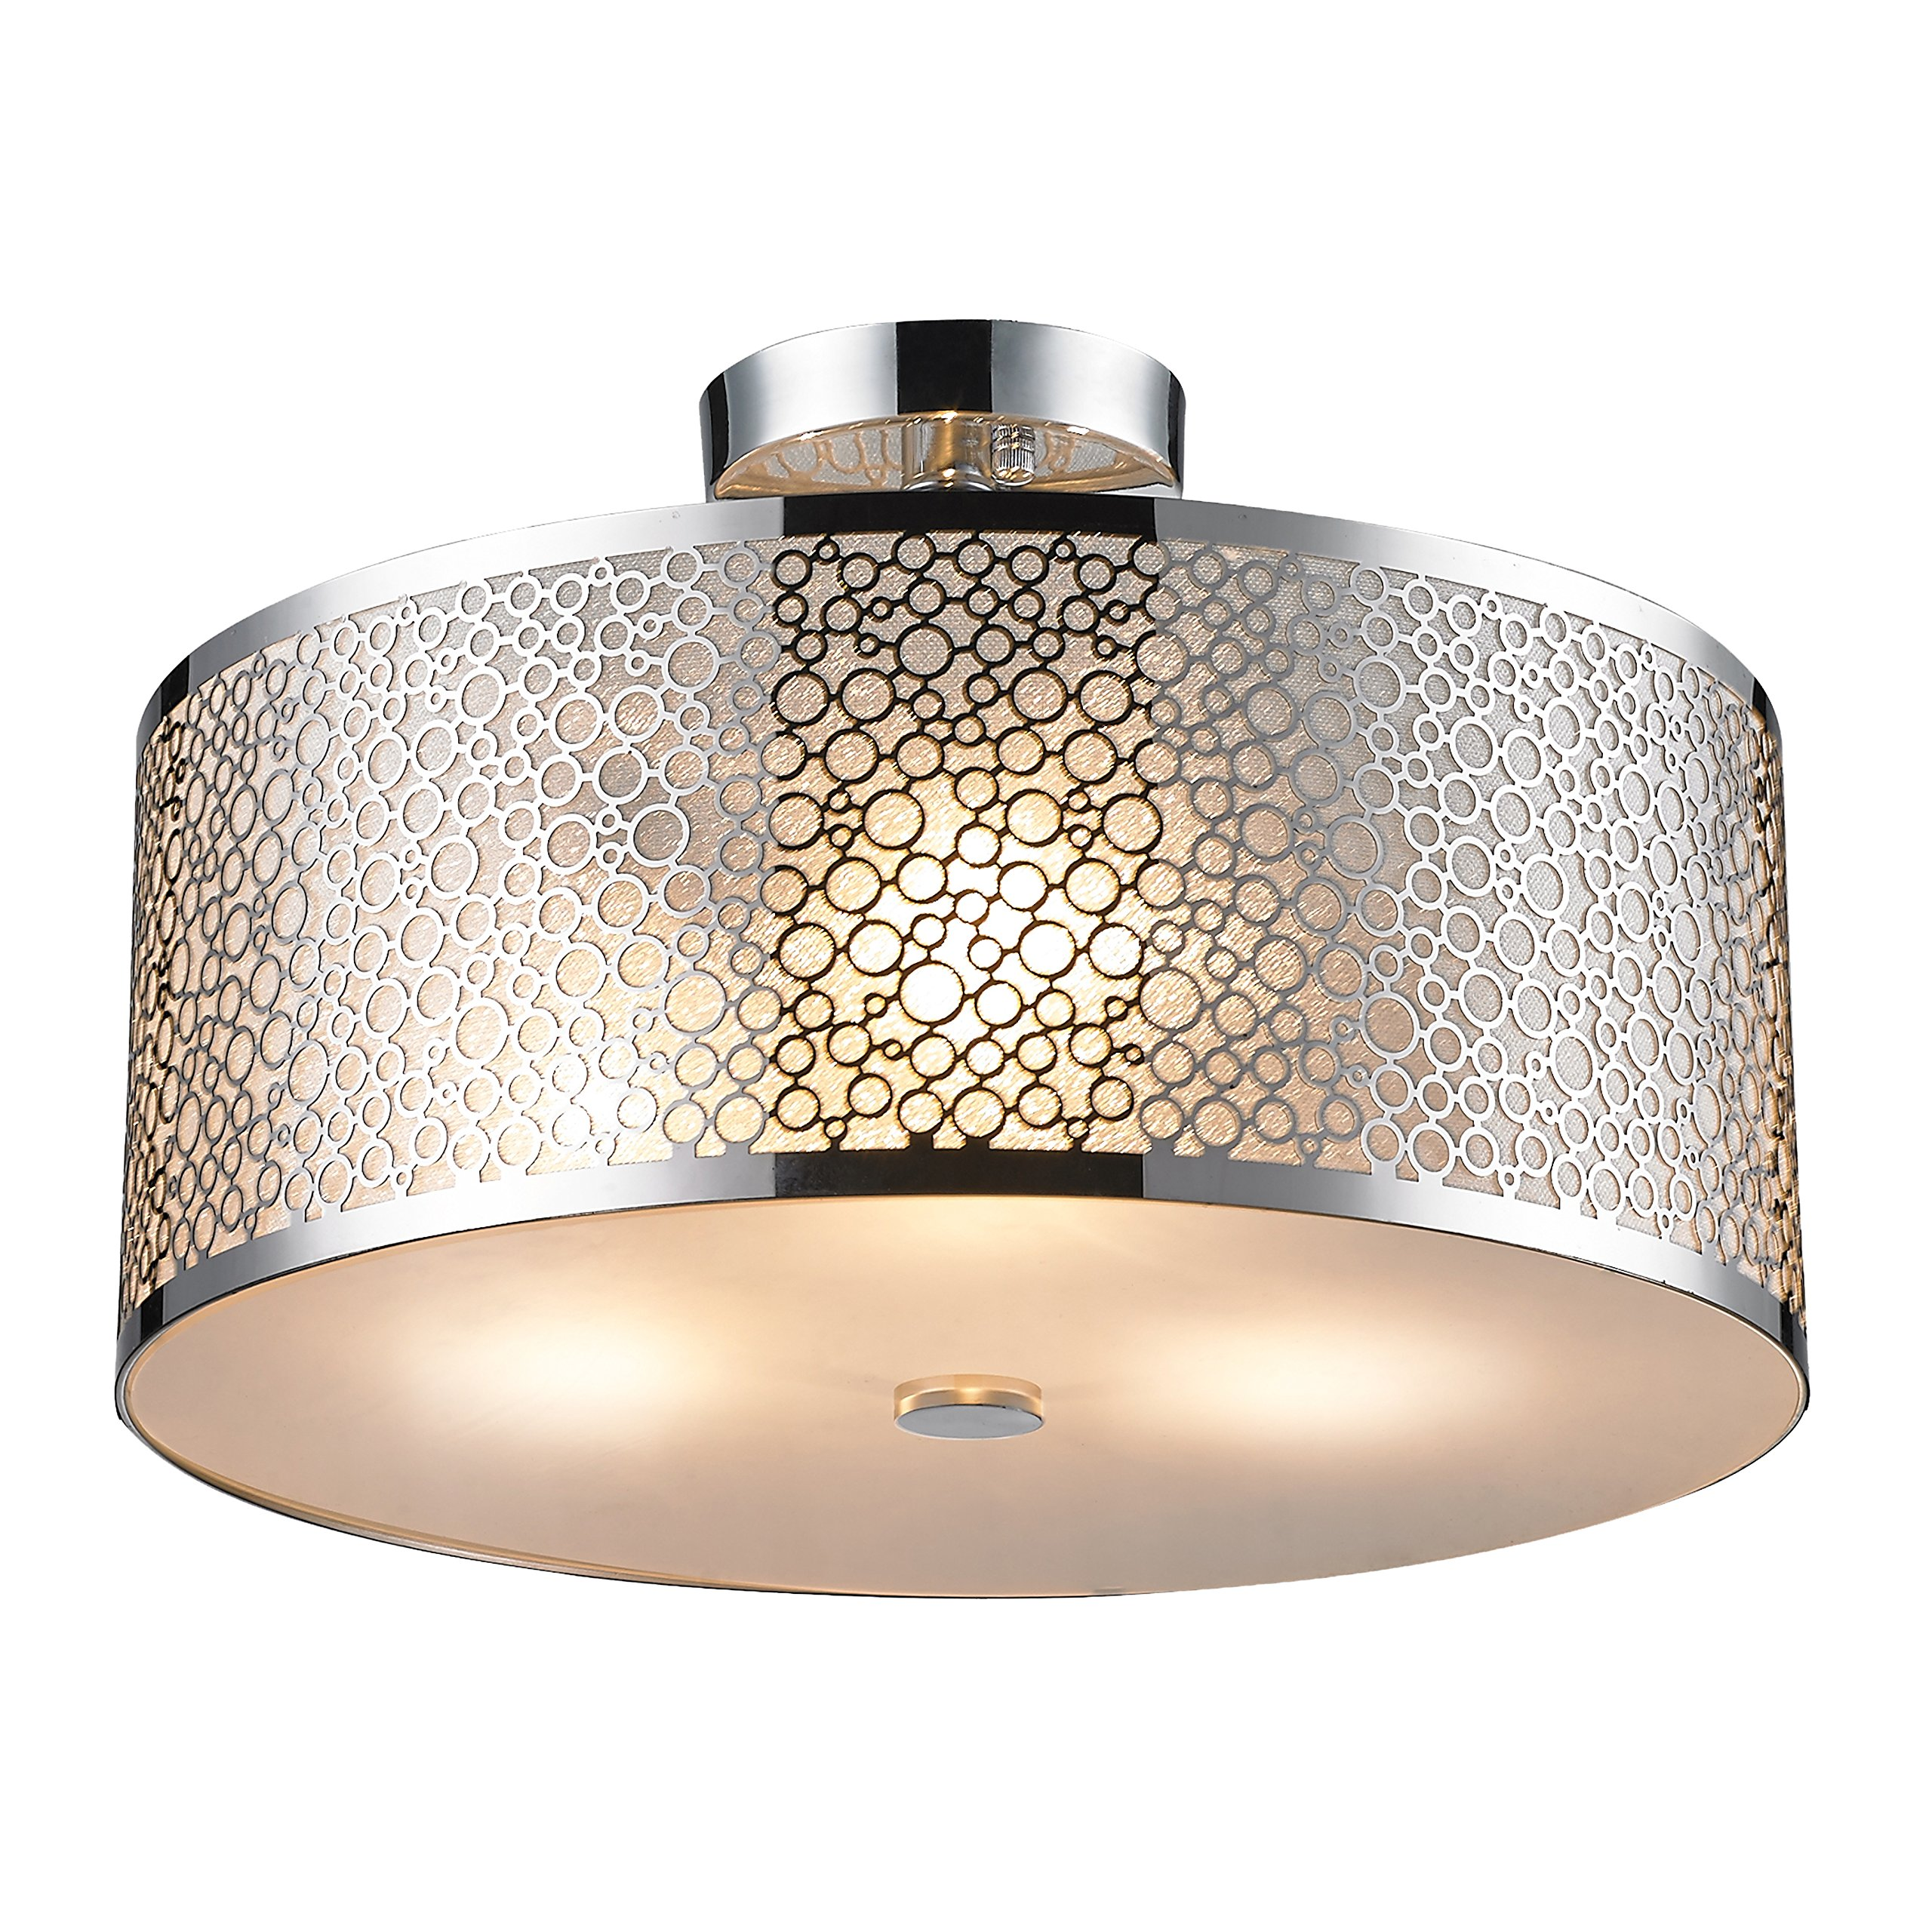 SereneLife Home Lighting Fixture - Semi Flush Mount Ceiling Accent Light with Elegant Sculpted Metal Lamp Shade (SLLMP416)